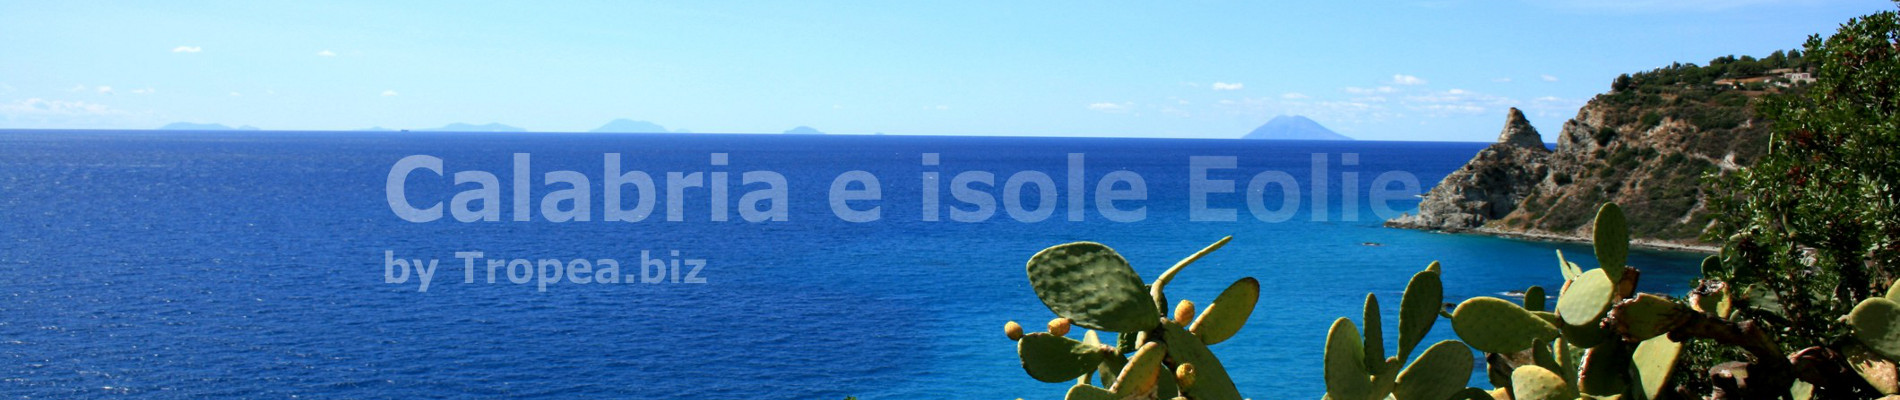 400tropea-calabria-isole-eolie.jpg